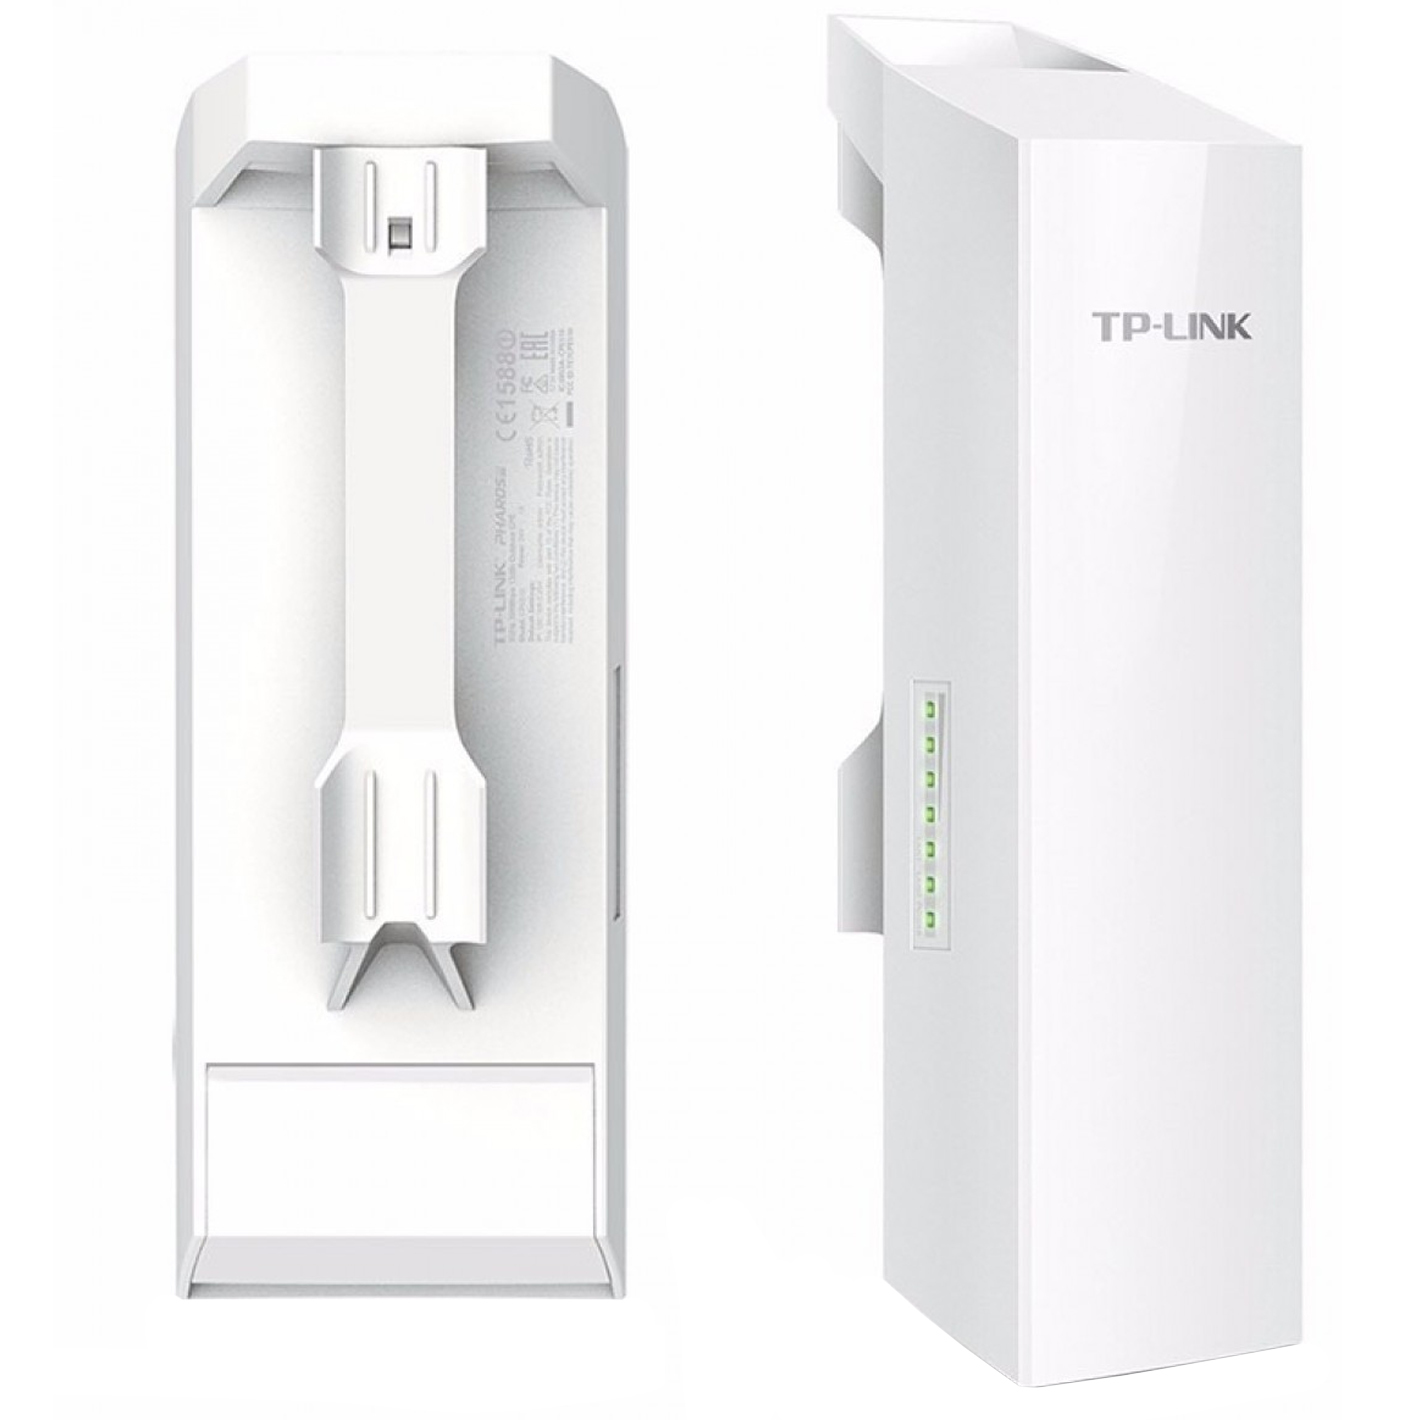 TP-LINK CPE210 OUTDOOR WRLS ACCESS POINT